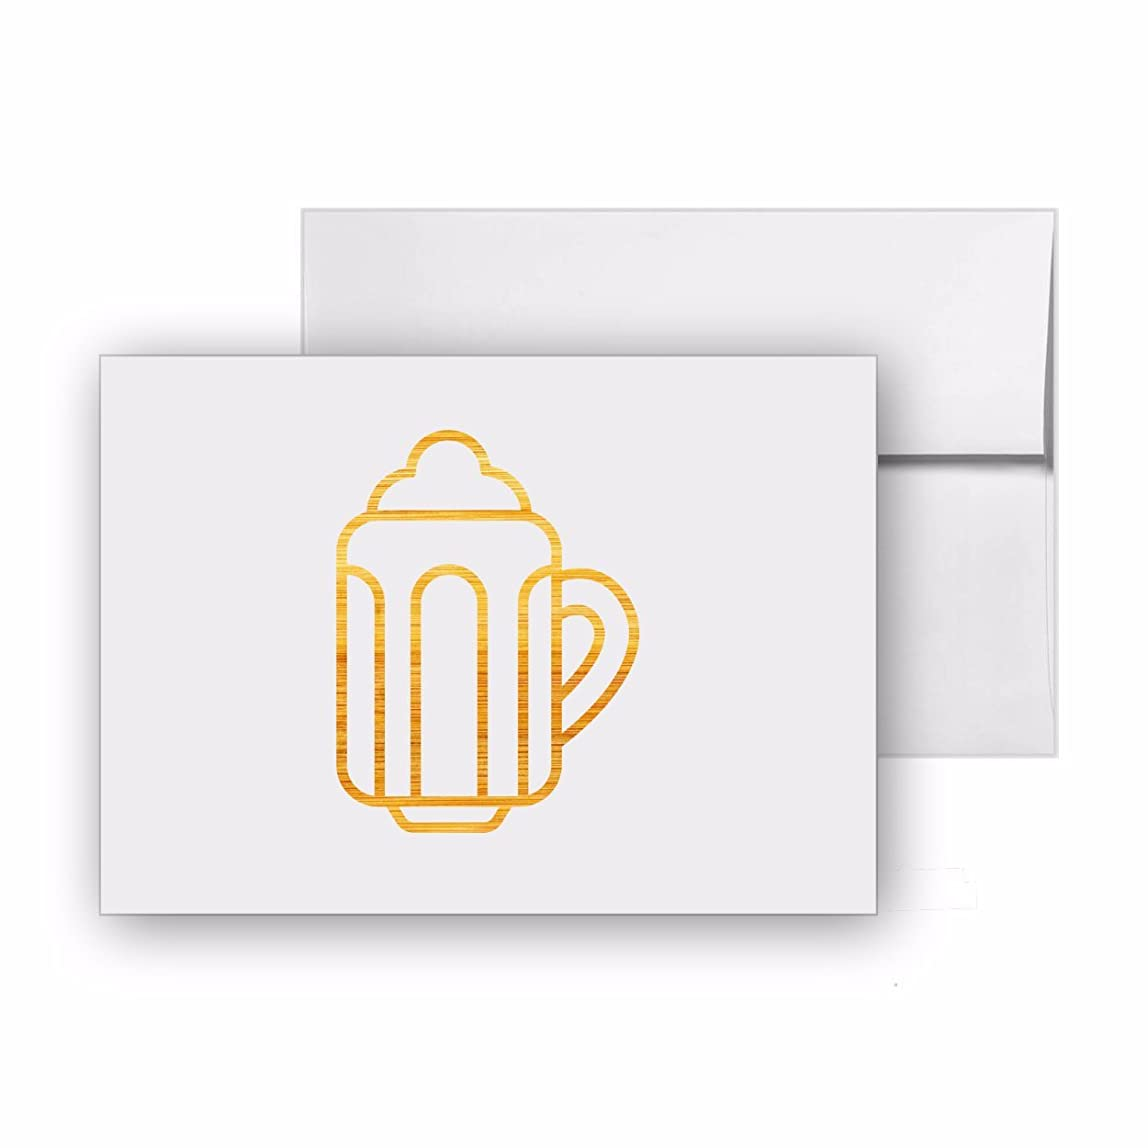 Beer Alcohol Drink Cup, Blank Card Invitation Pack, 15 cards at 4x6, with White Envelopes, Item 20584 vuhdmux870217